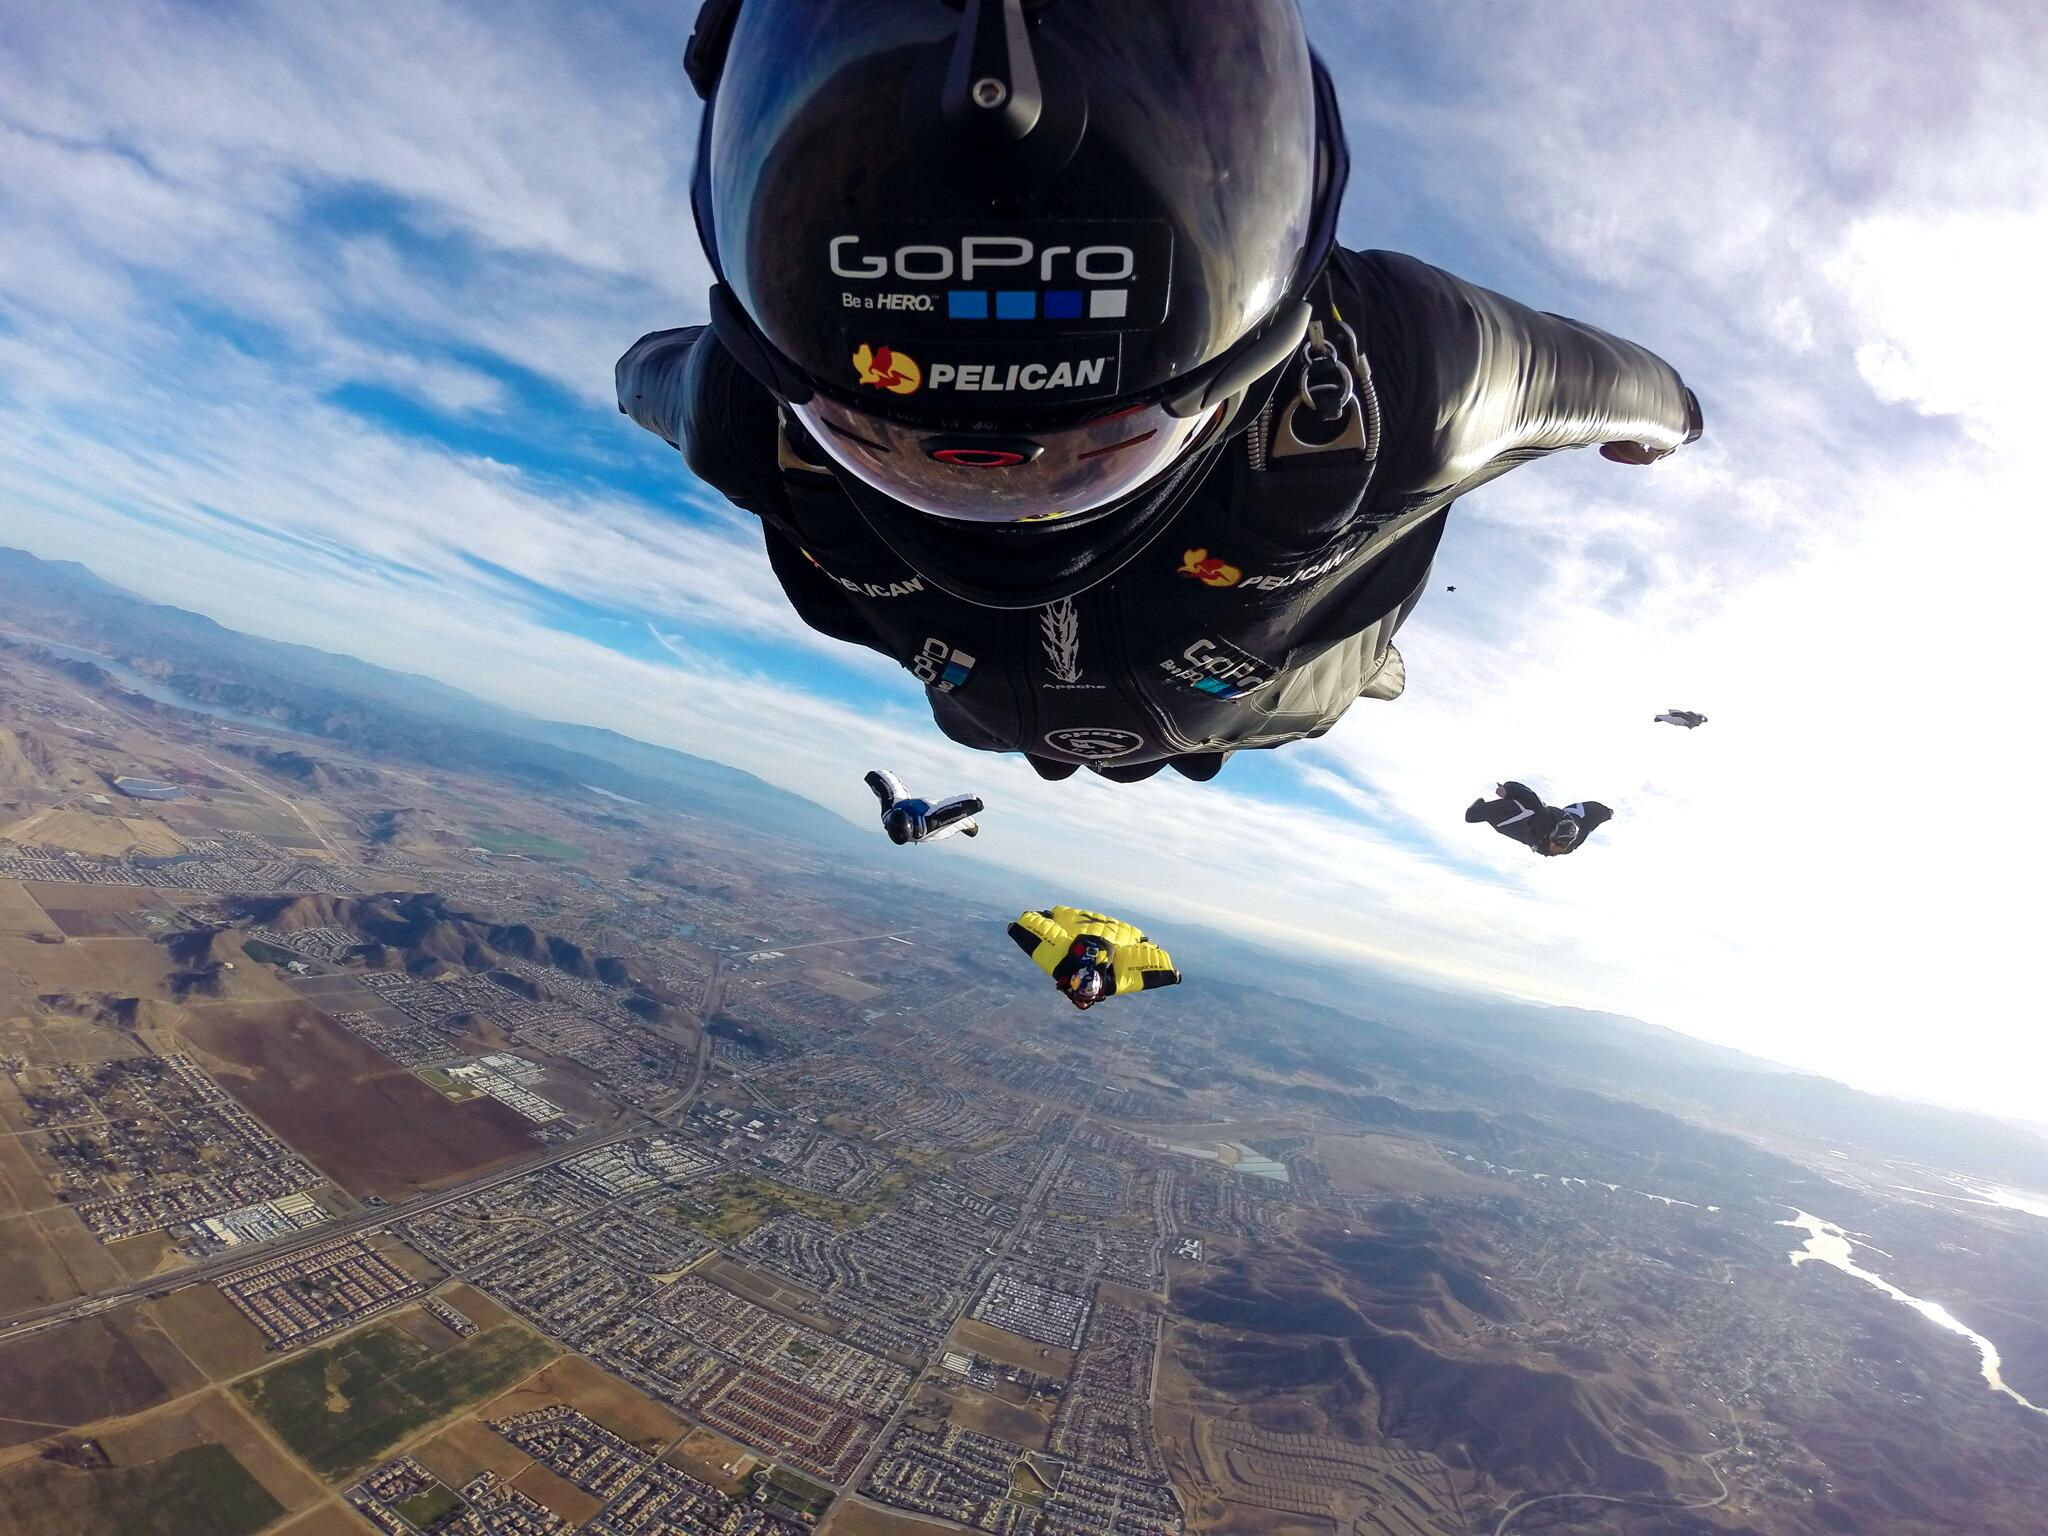 """GoPro Tip: Use time-lapse mode to capture POV photos, instead of """"Photo"""" mode. @jebcorliss shows us how it's done. http://t.co/gMG81uZMcT"""